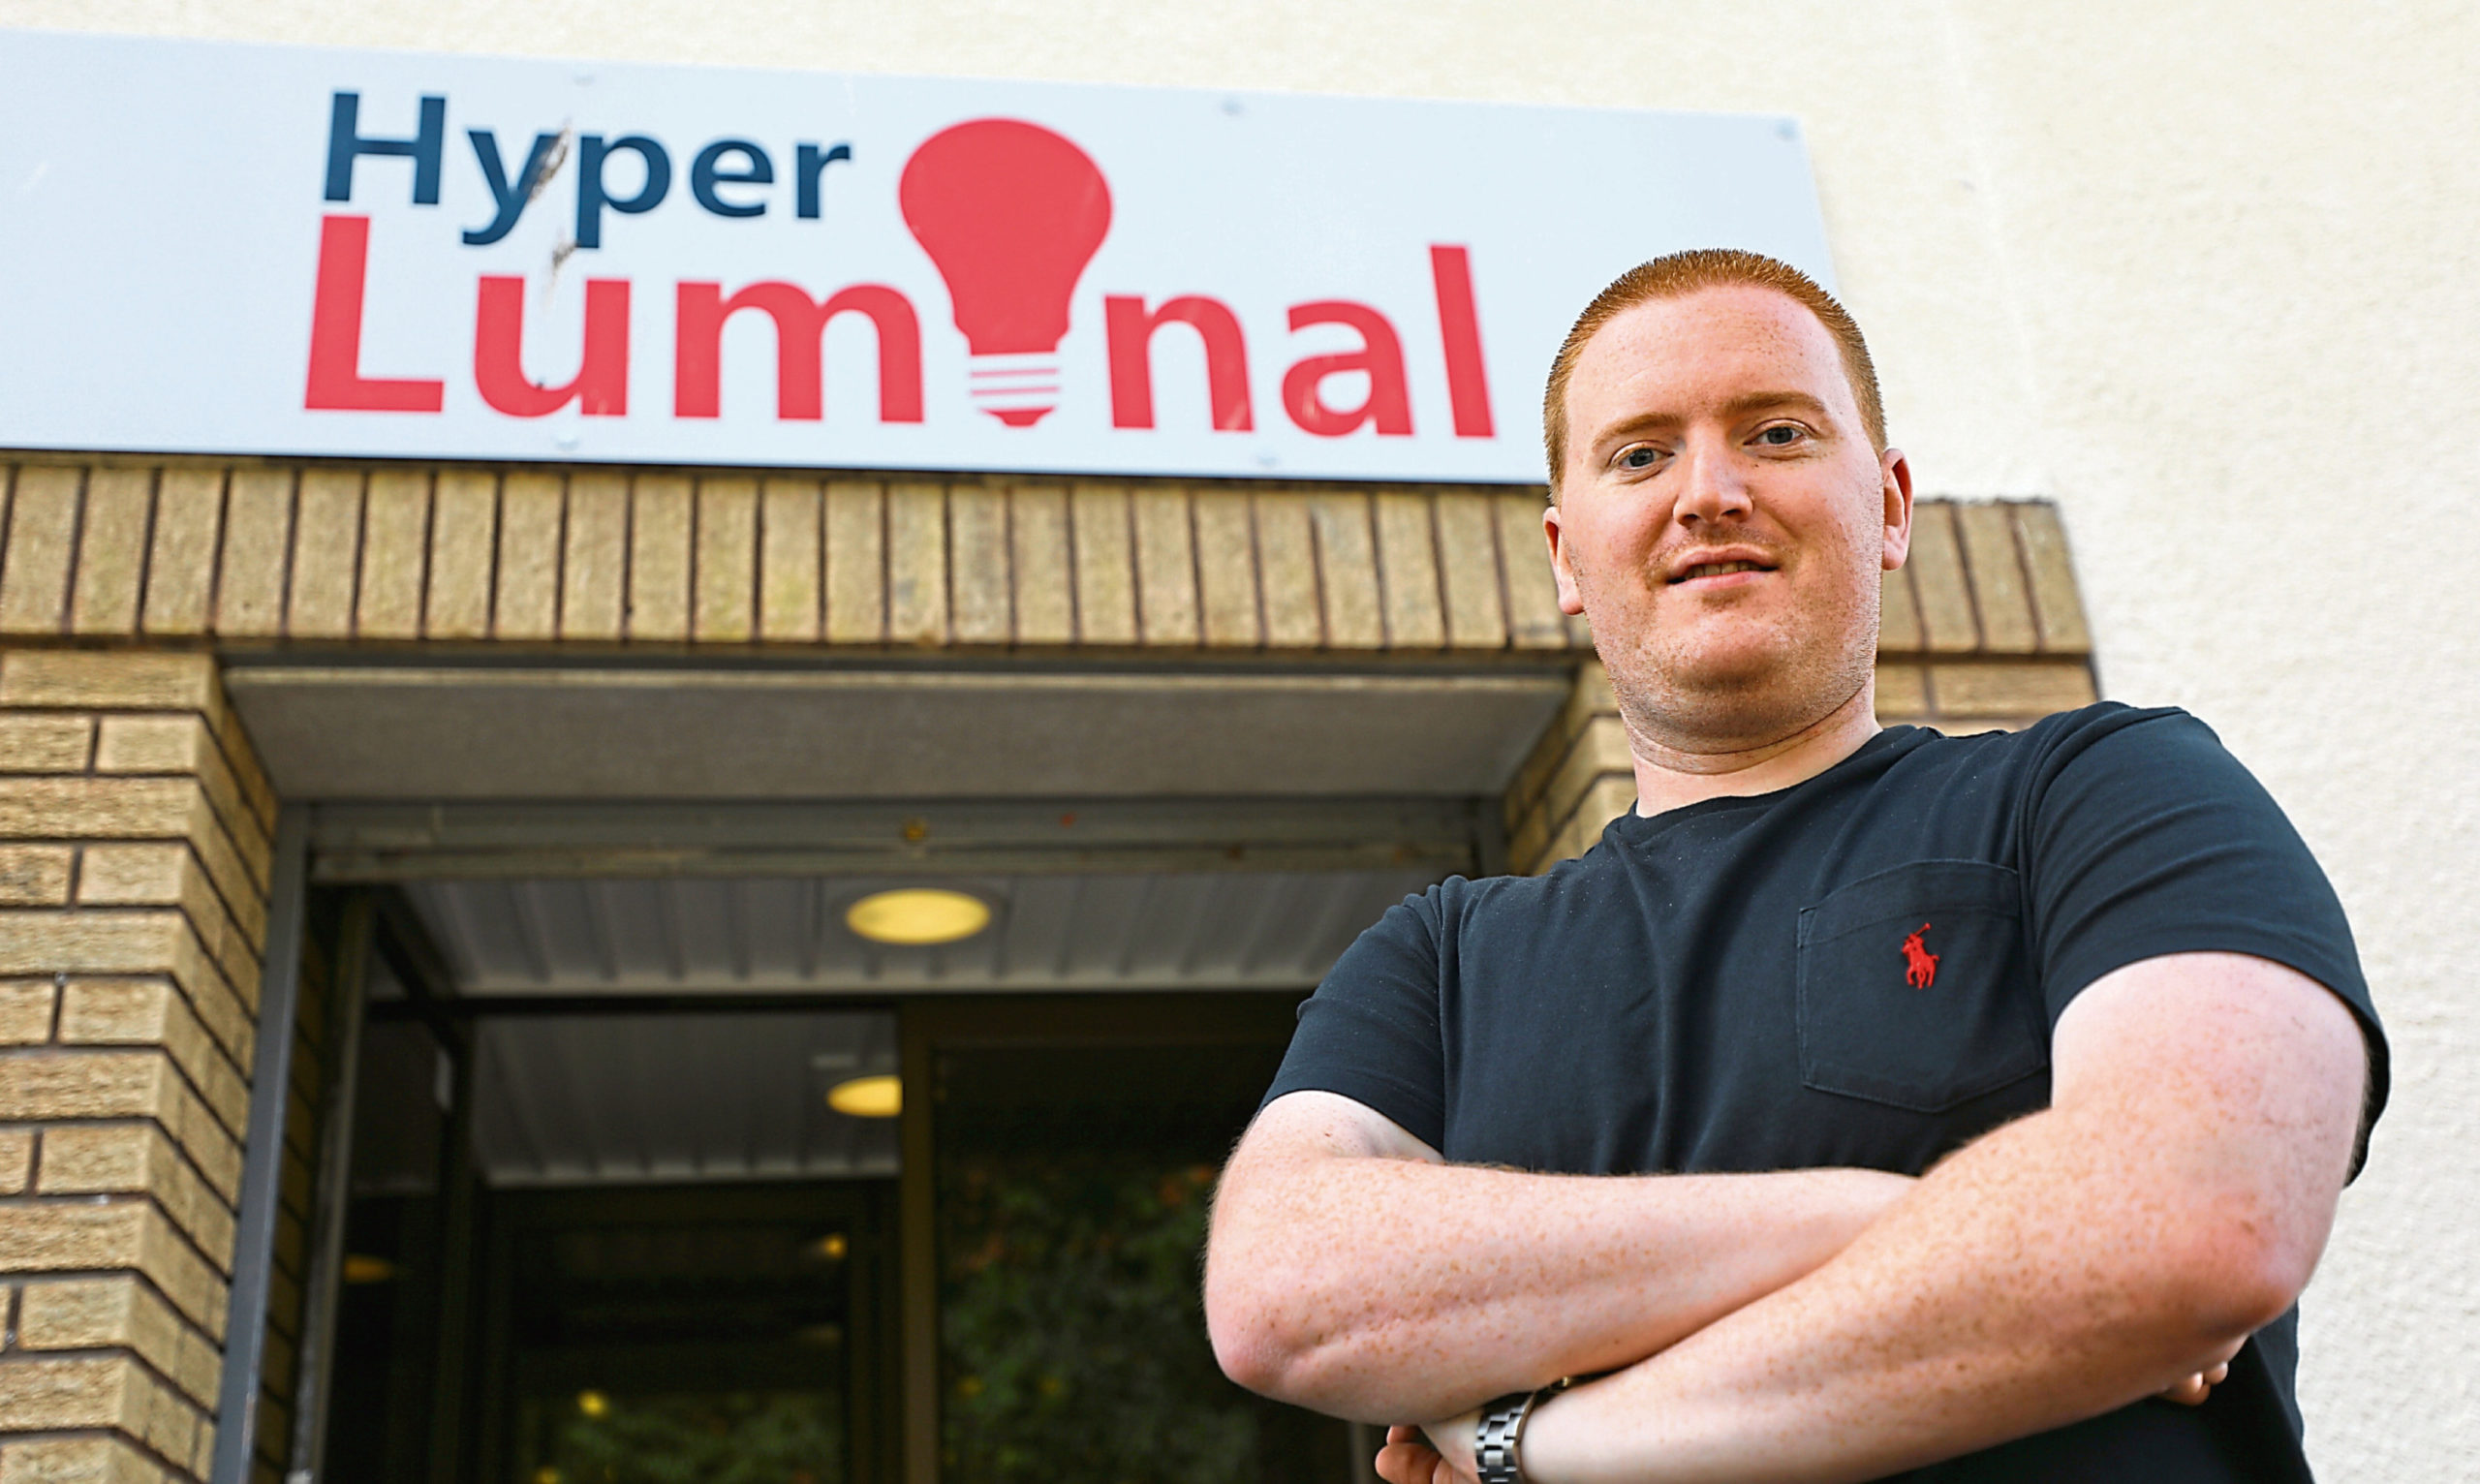 Hyper Luminal Games chief executive and co-founder Stuart Martin